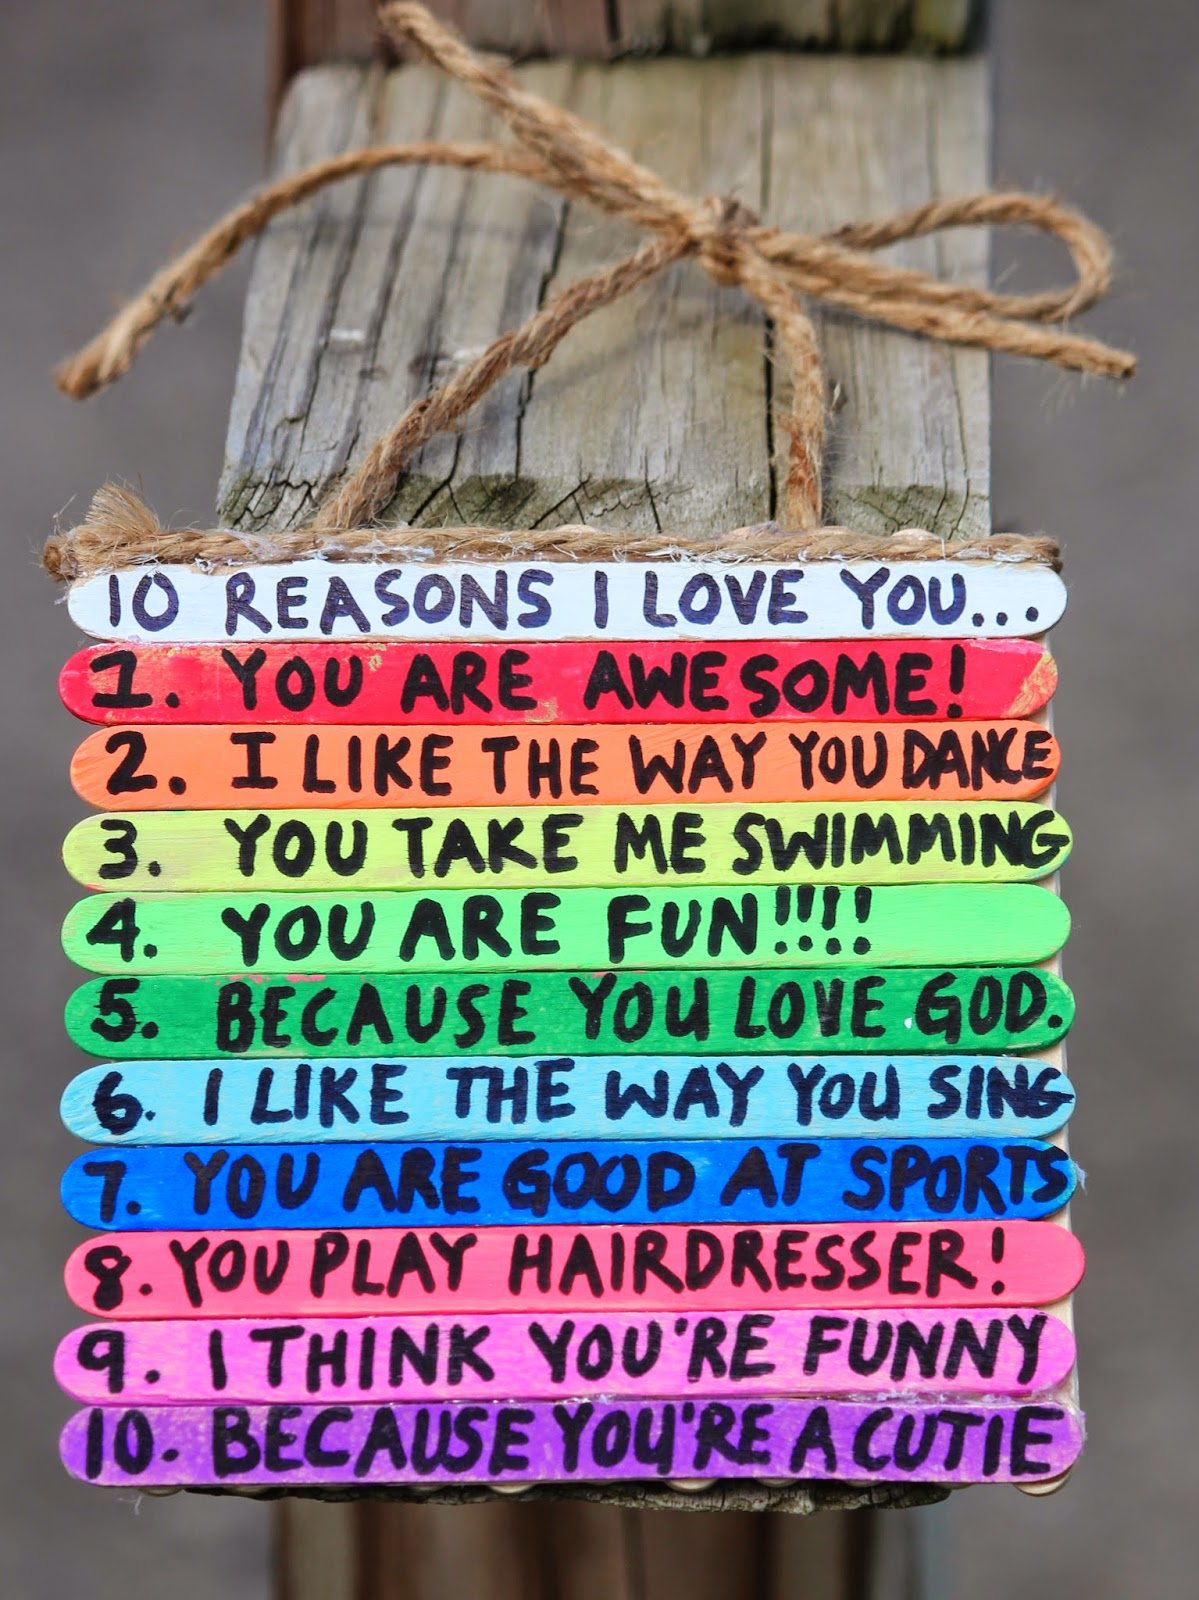 Reasons Y I Love You Quotes : love you here are 10 reasons why lilah loves her daddy my favorite is ...